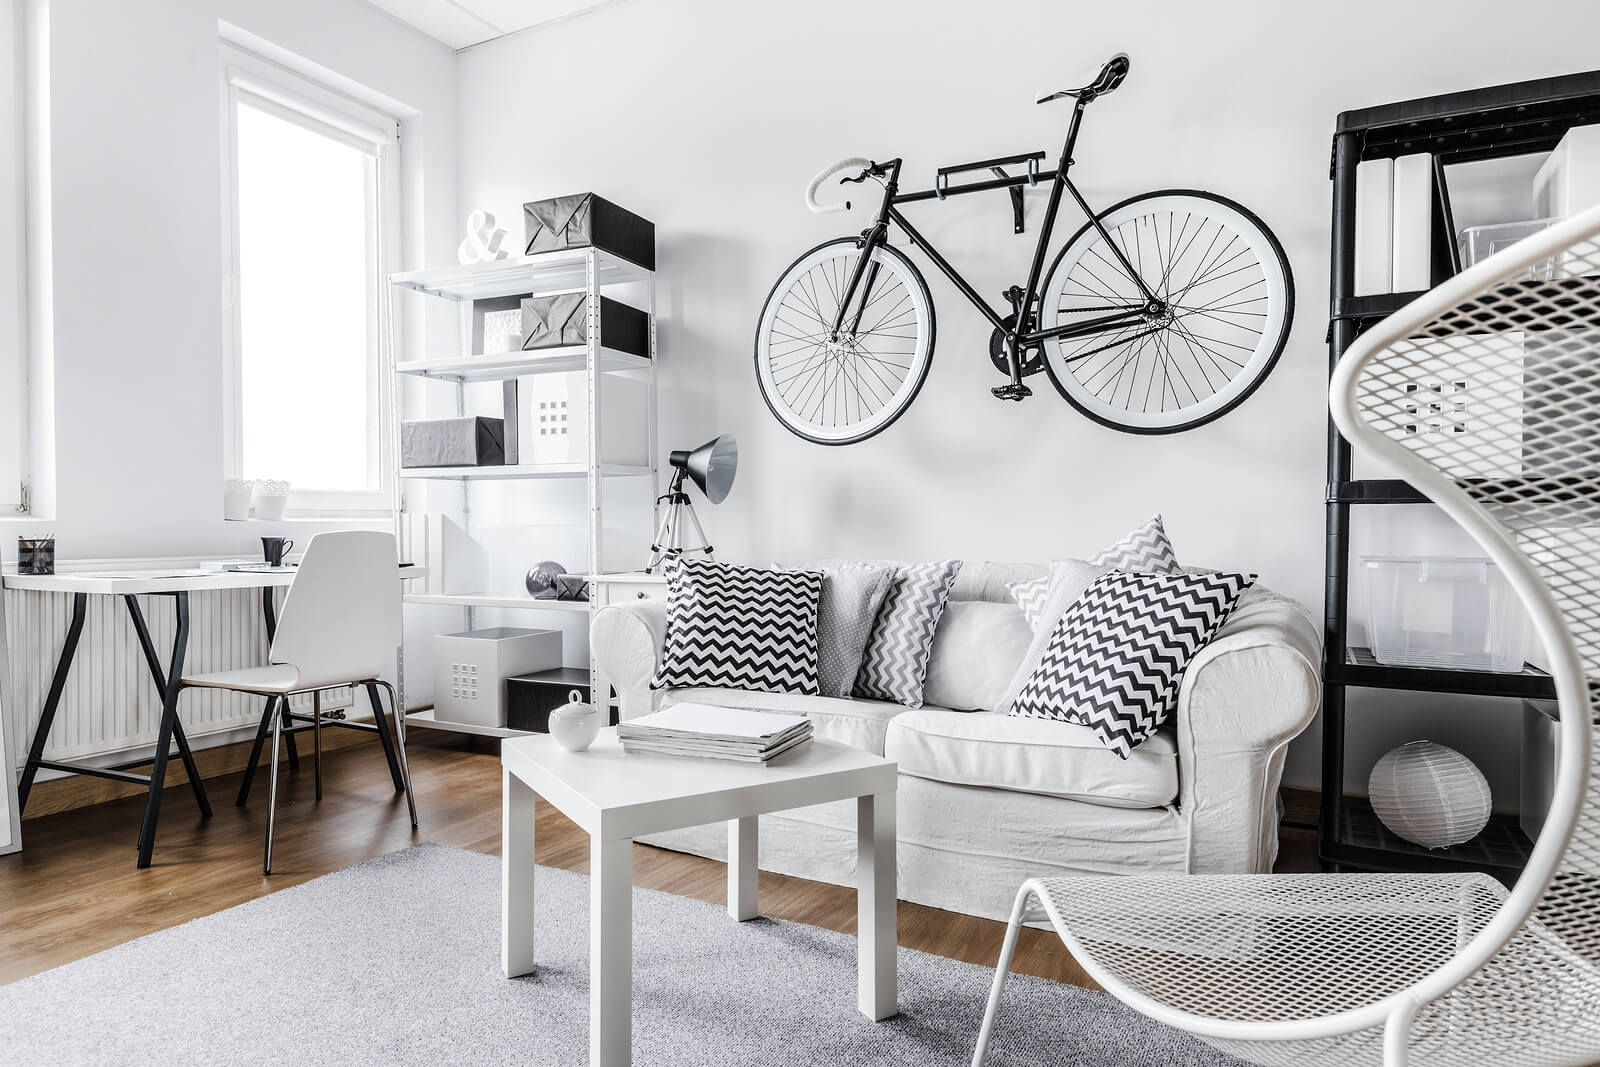 smart-design-ideas-for-small-spaces